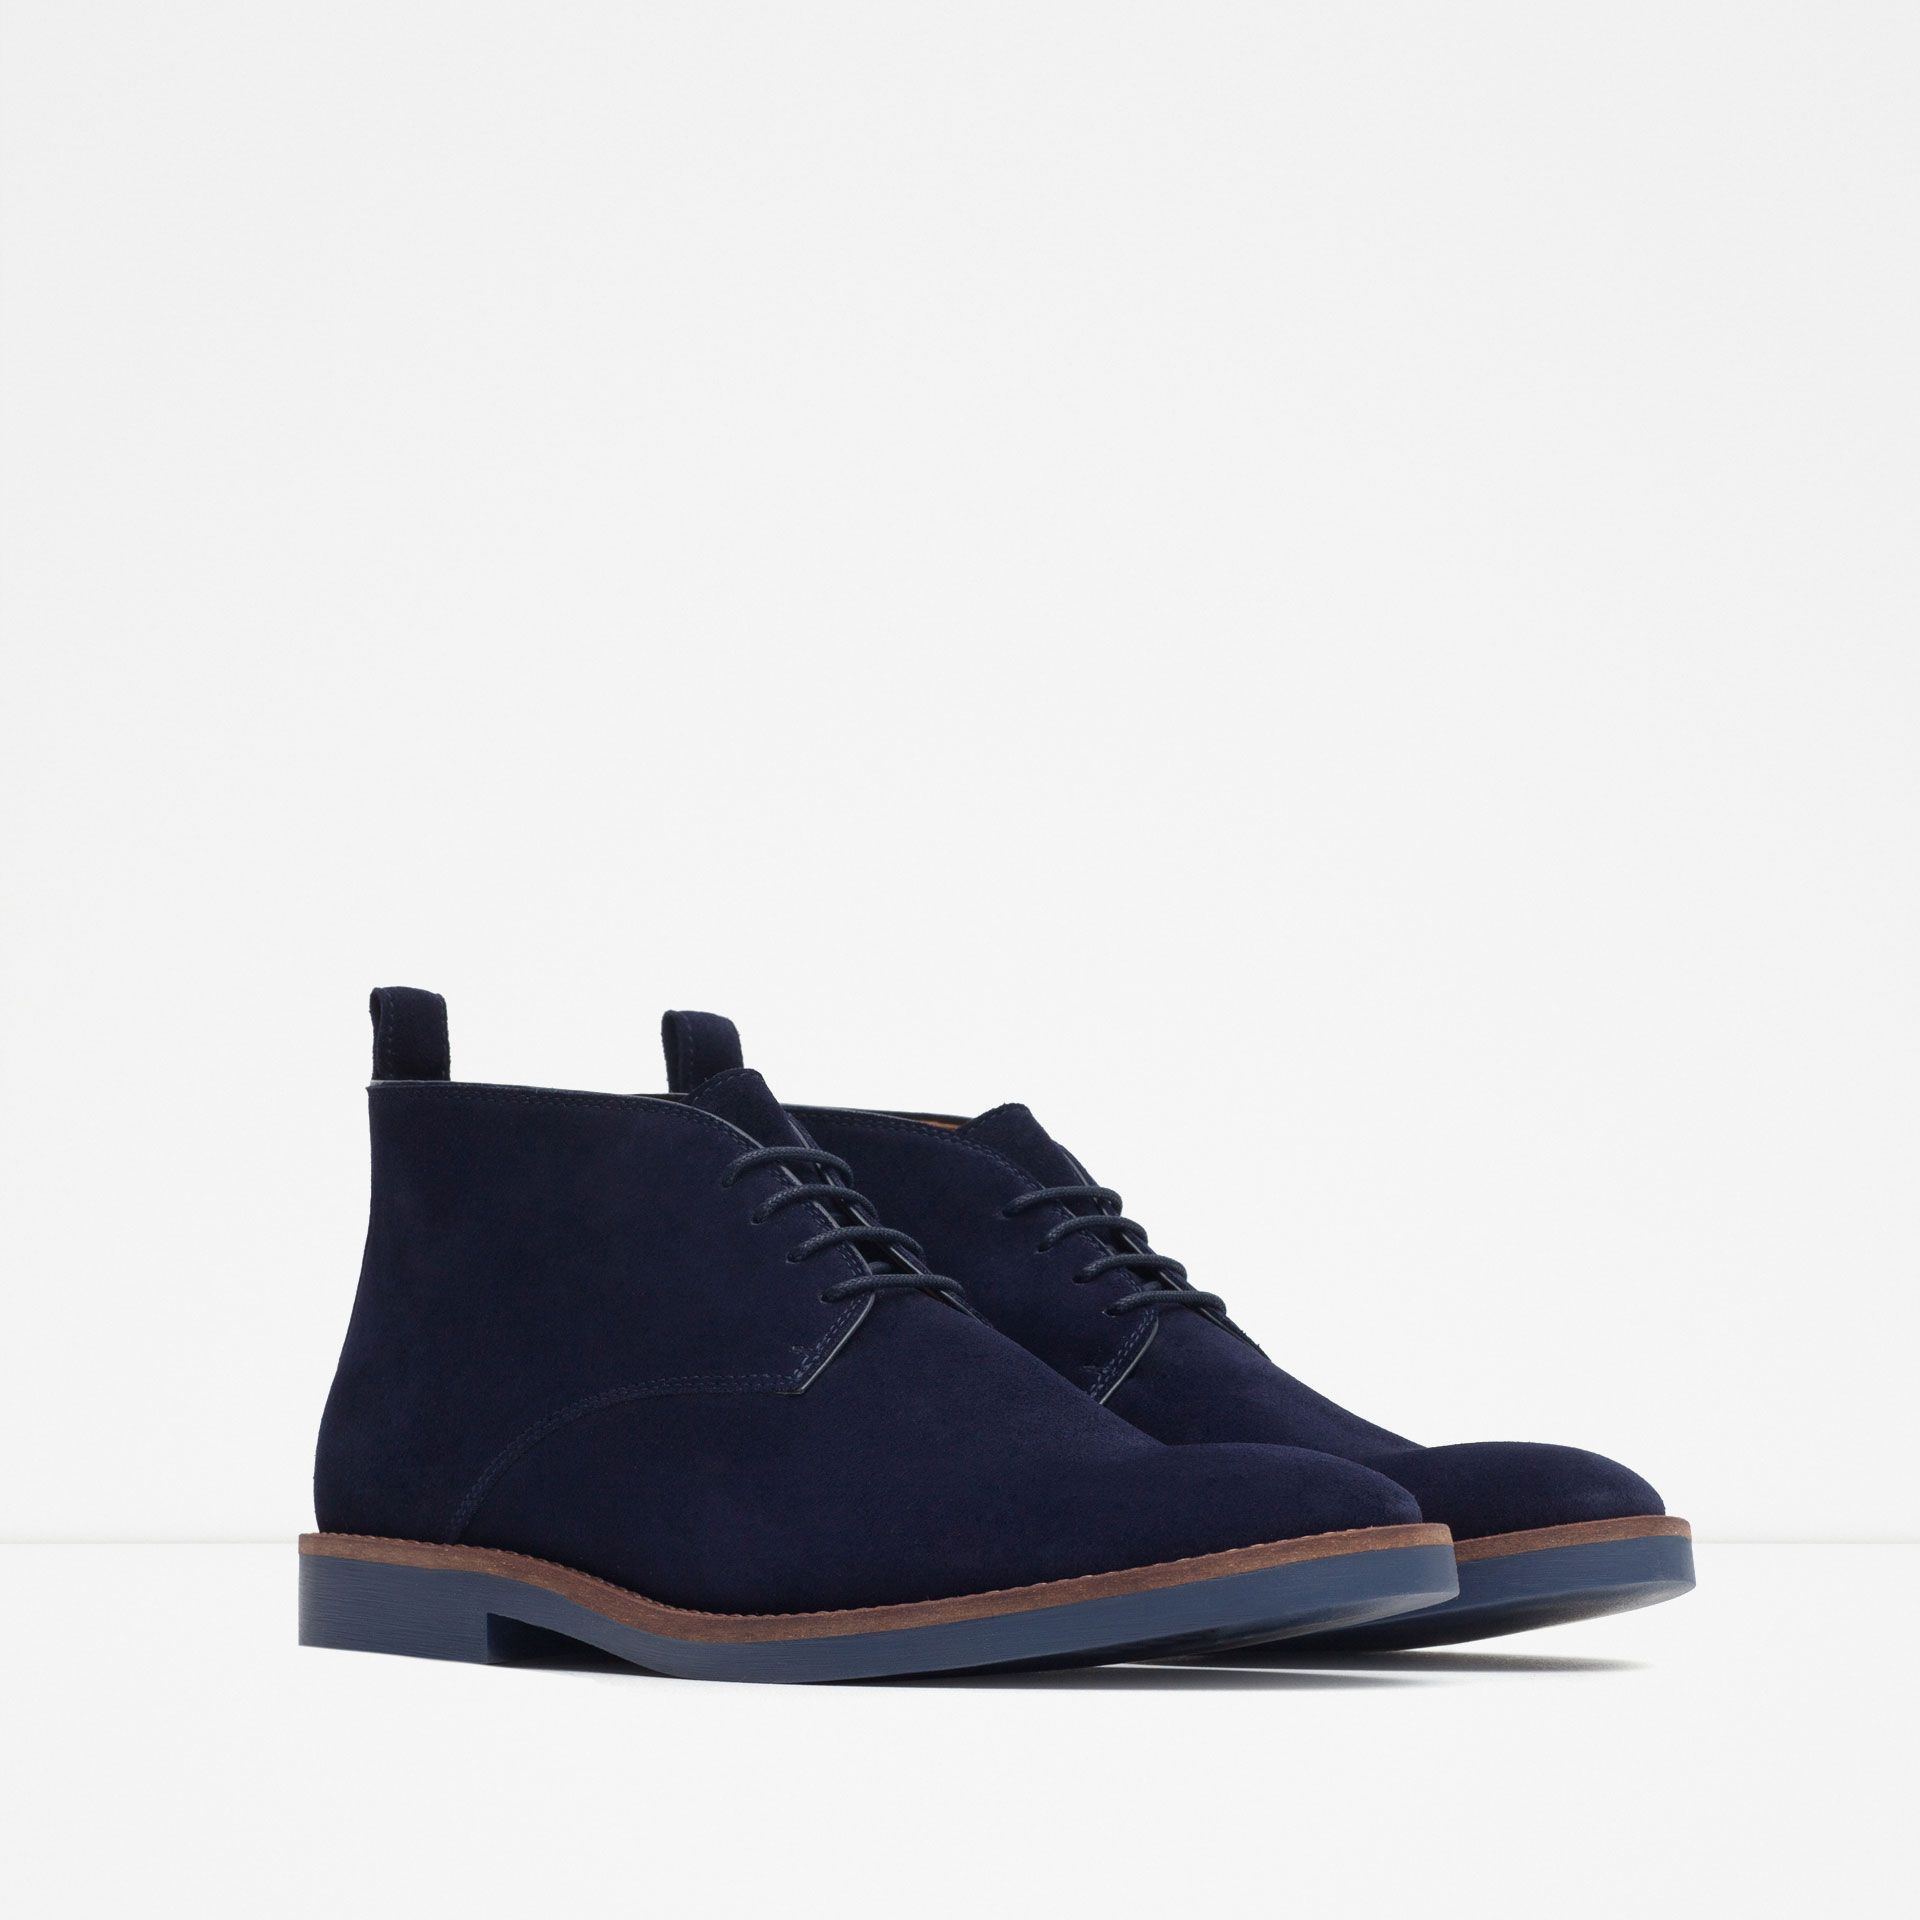 bottines en cuir style desert boots tout voir chaussures homme zara maroc pickashoe. Black Bedroom Furniture Sets. Home Design Ideas